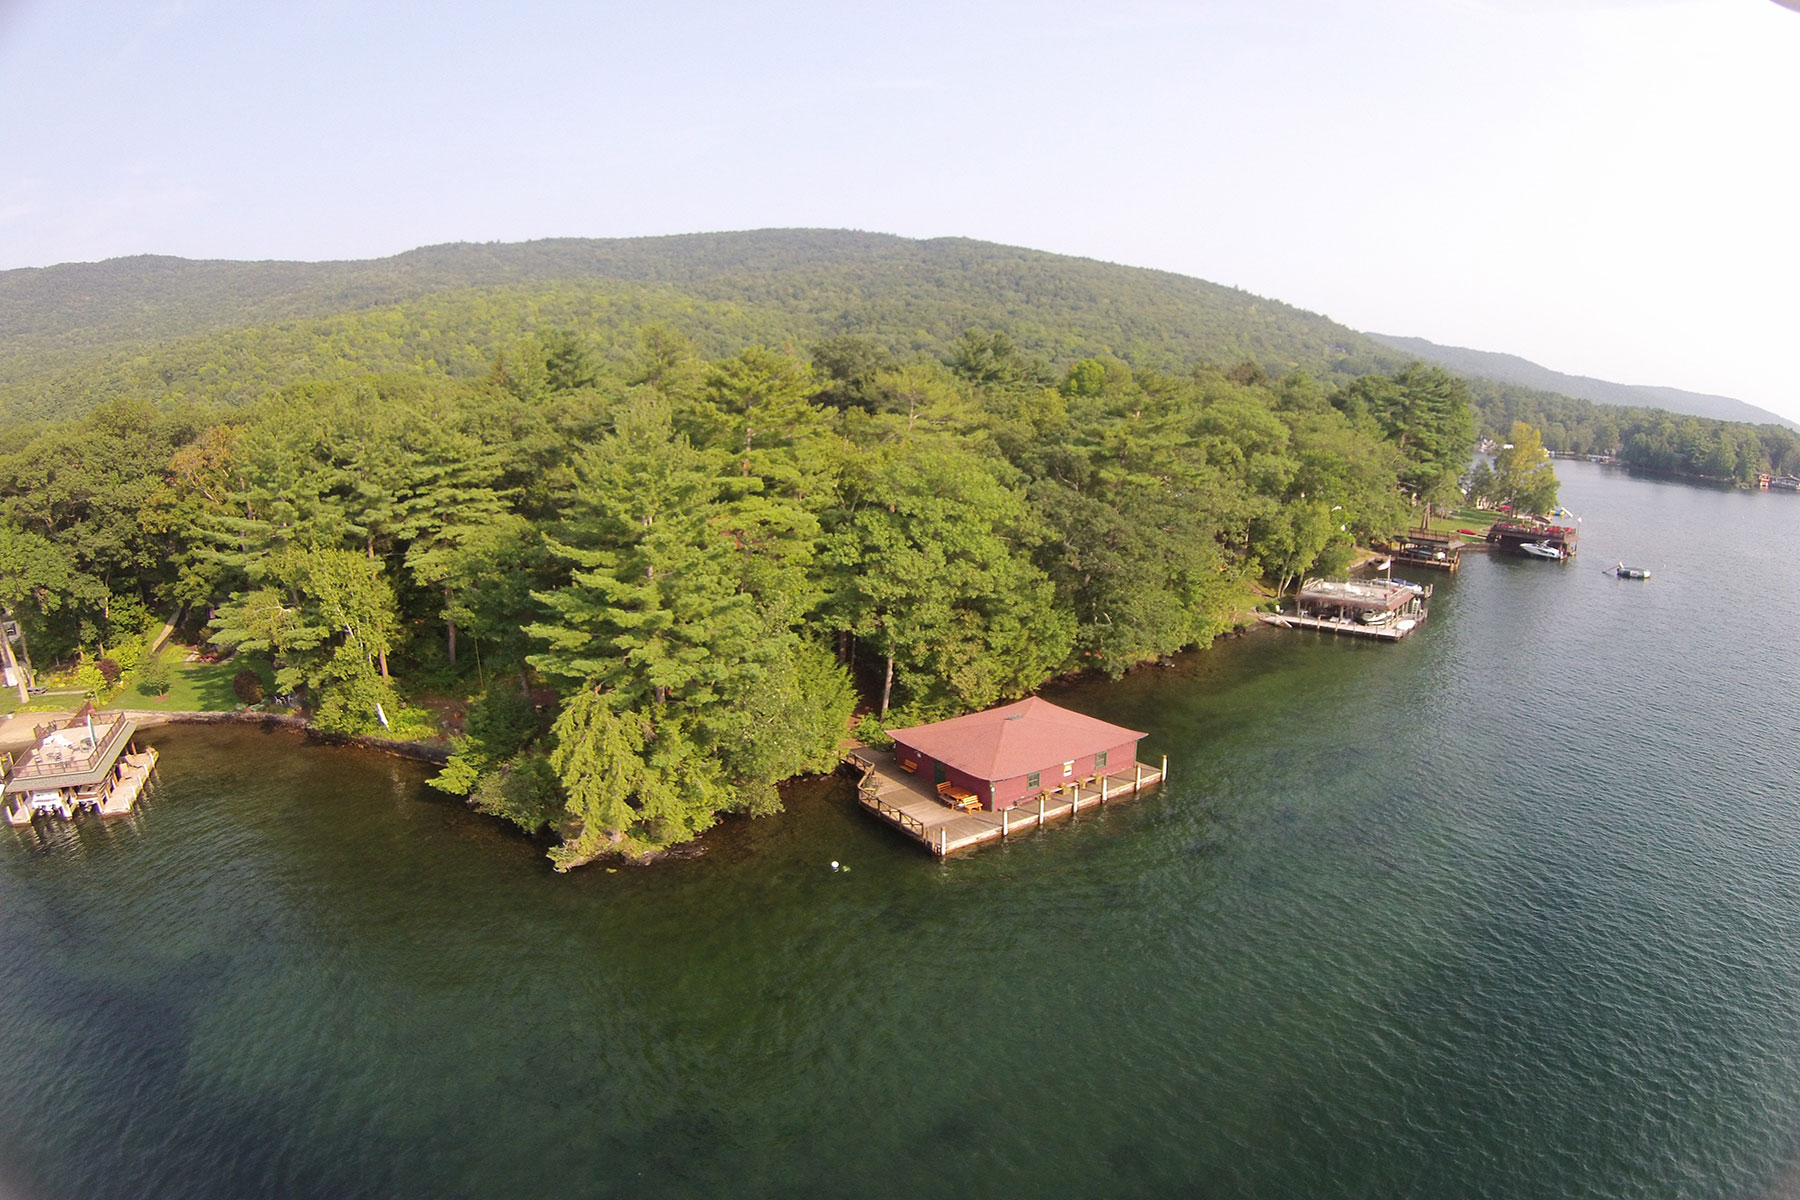 Single Family Home for Sale at Tapawingo - Lake George Waterfront 32 Bean Rd Kattskill Bay, 12844 United States